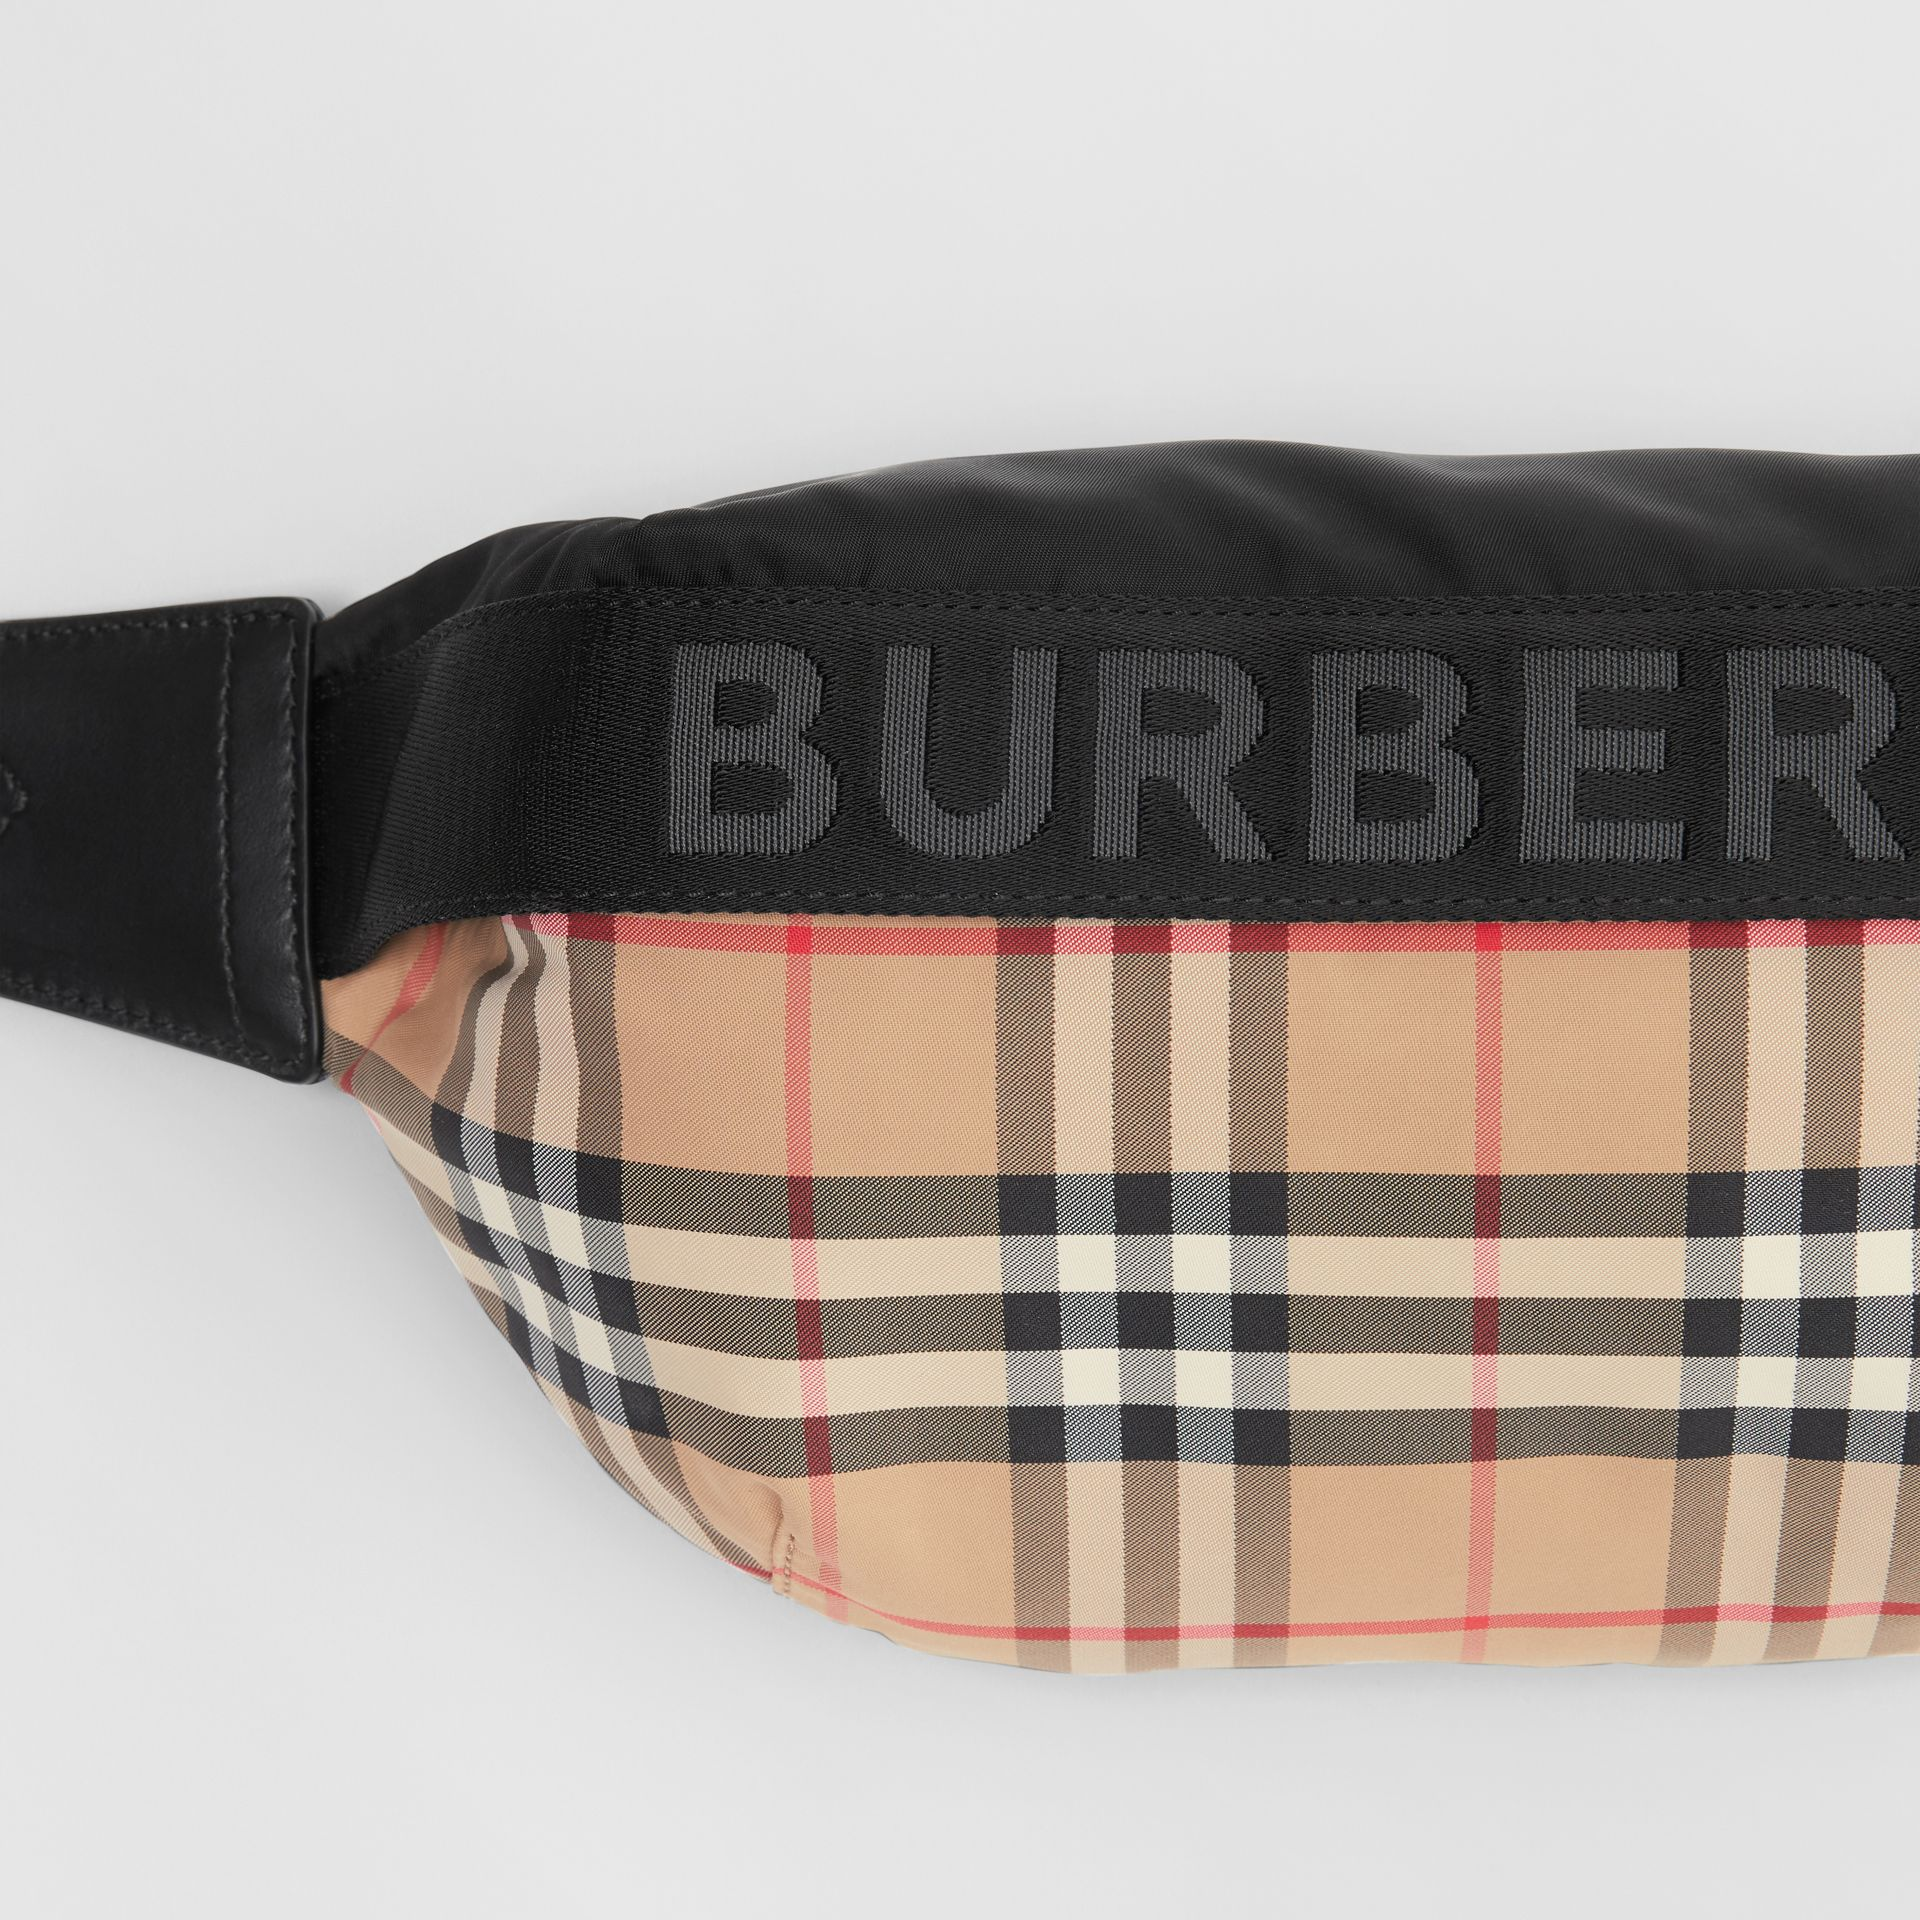 Medium Vintage Check Bum Bag in Archive Beige - Women | Burberry Hong Kong S.A.R - gallery image 1